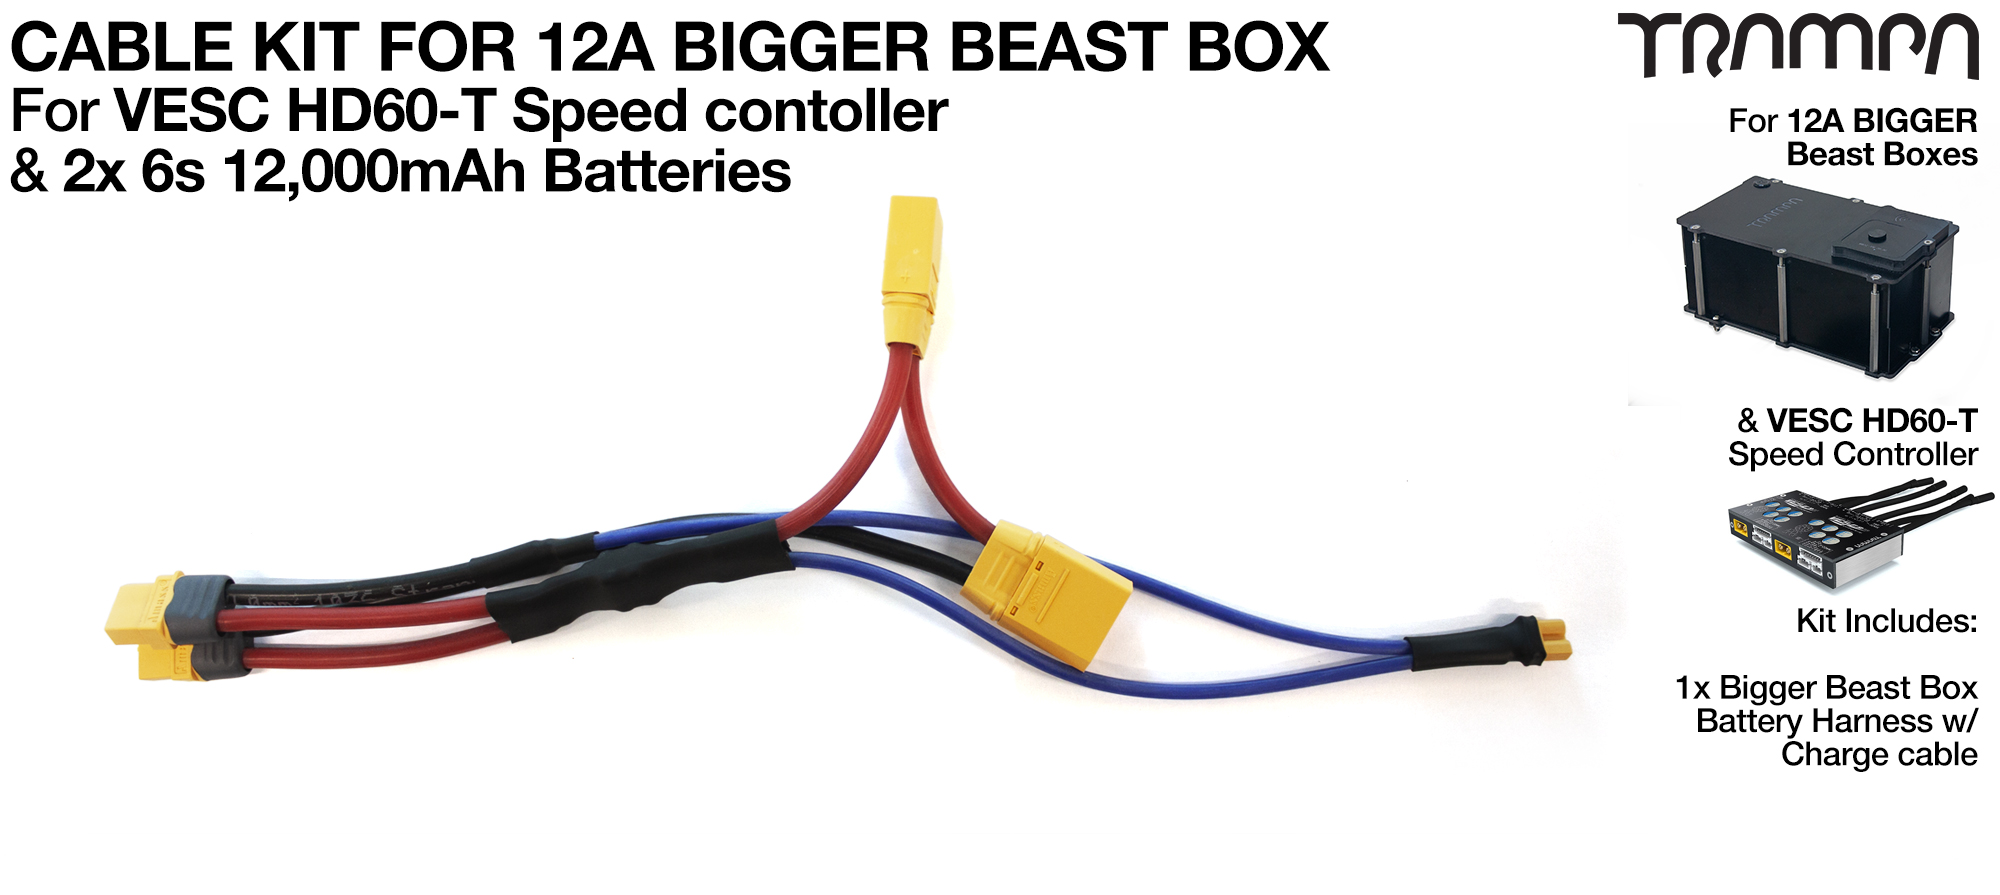 2019 BEAST BOX TWIN VESC Cable Kit